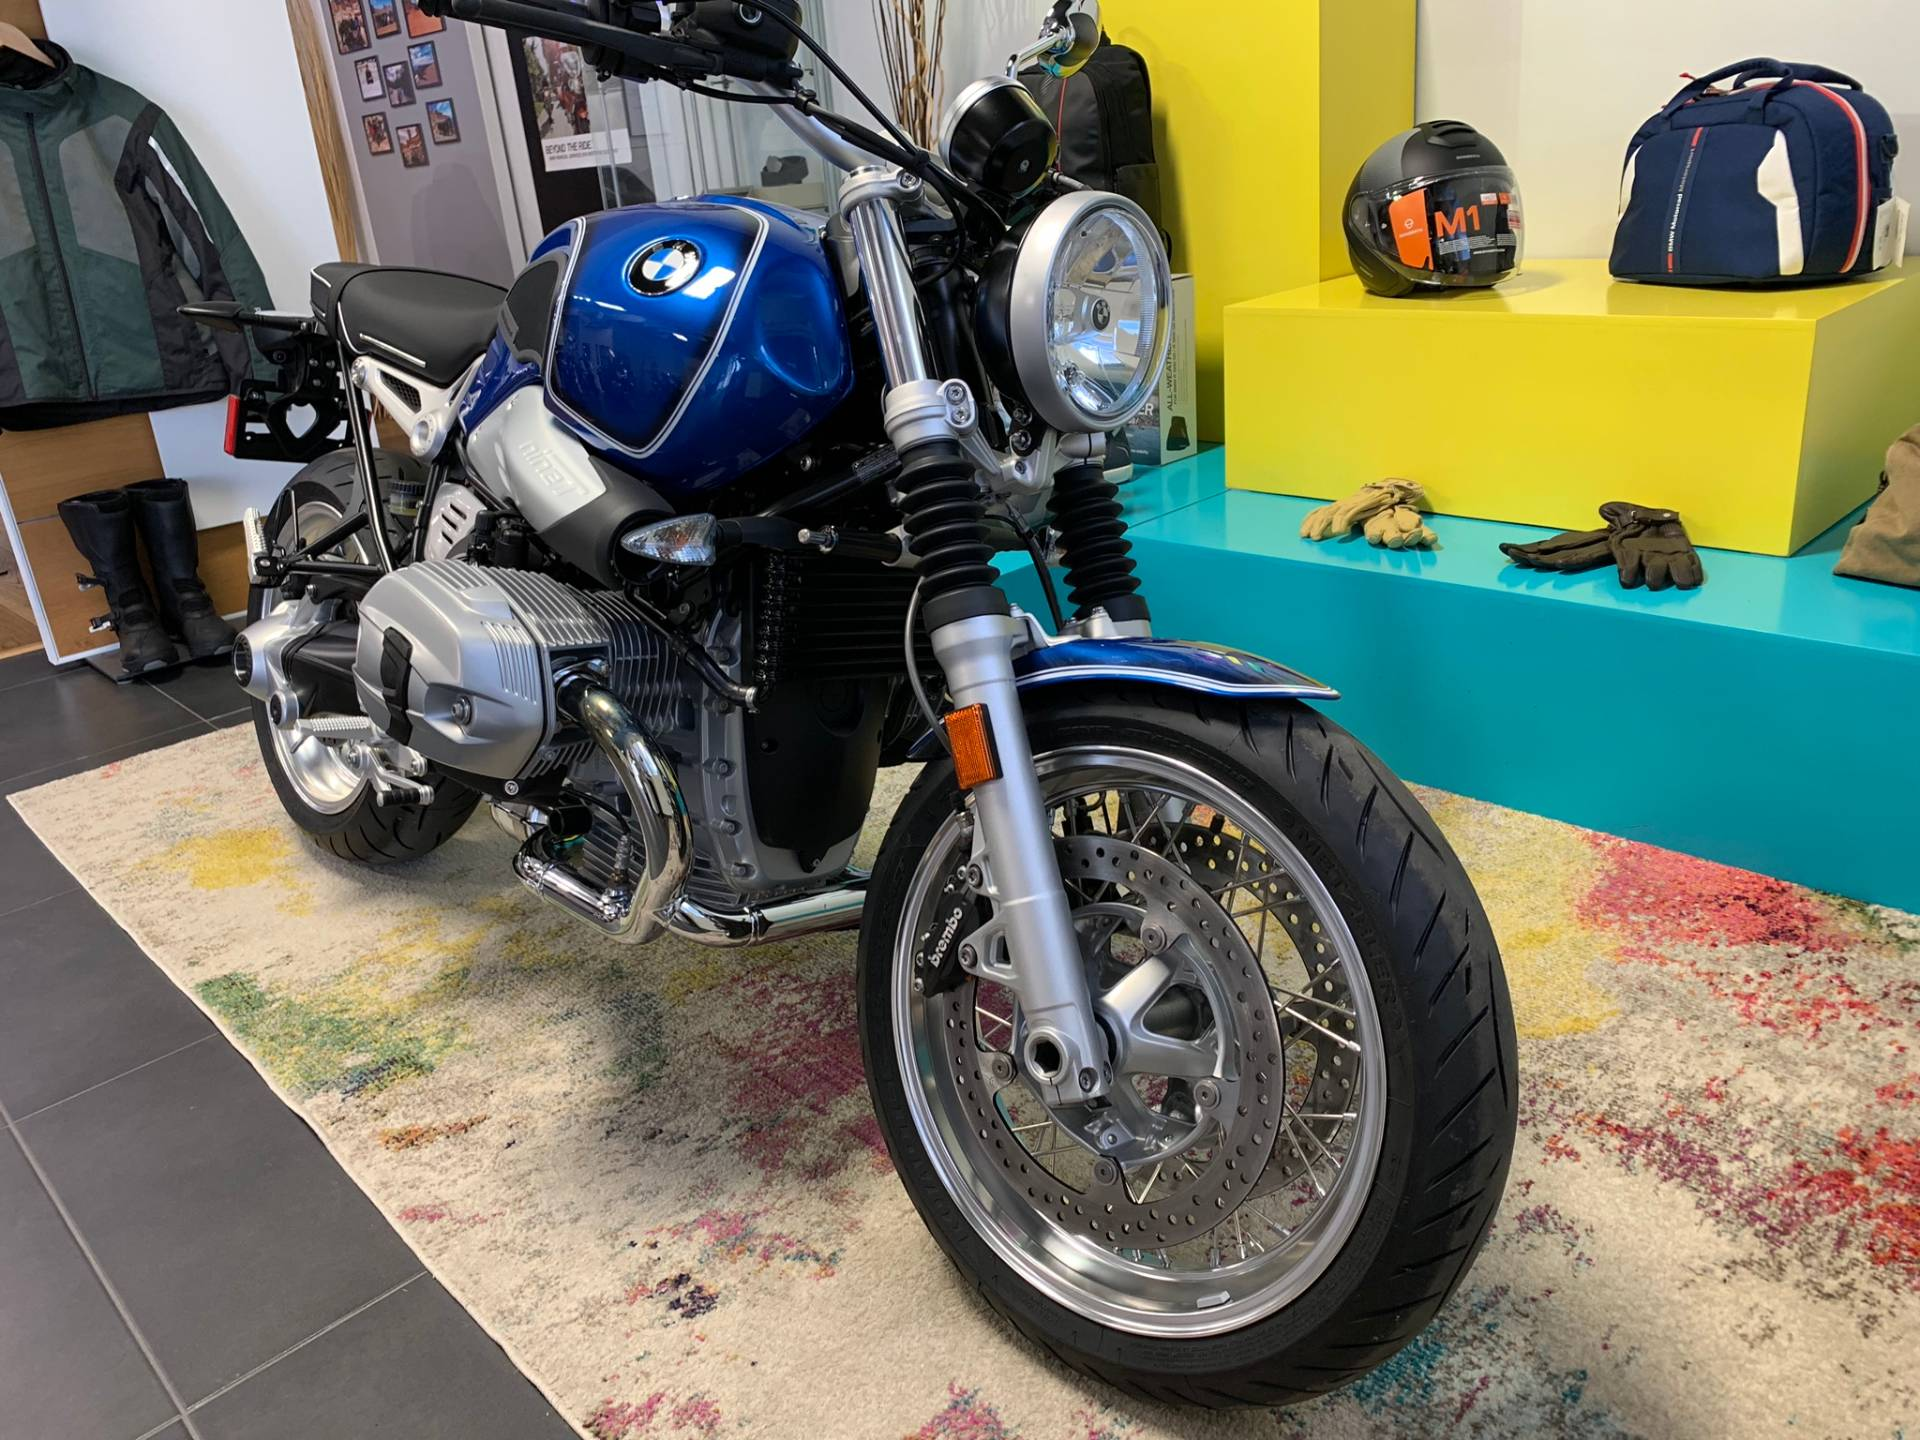 New 2020 2019 BMW R NineT for sale, BMW for sale, BMW Motorcycle Café Racer, new BMW Caffe, Cafe Racer, BMW. BMW Motorcycles of Miami, Motorcycles of Miami, Motorcycles Miami, New Motorcycles, Used Motorcycles, pre-owned. #BMWMotorcyclesOfMiami #MotorcyclesOfMiami. - Photo 3